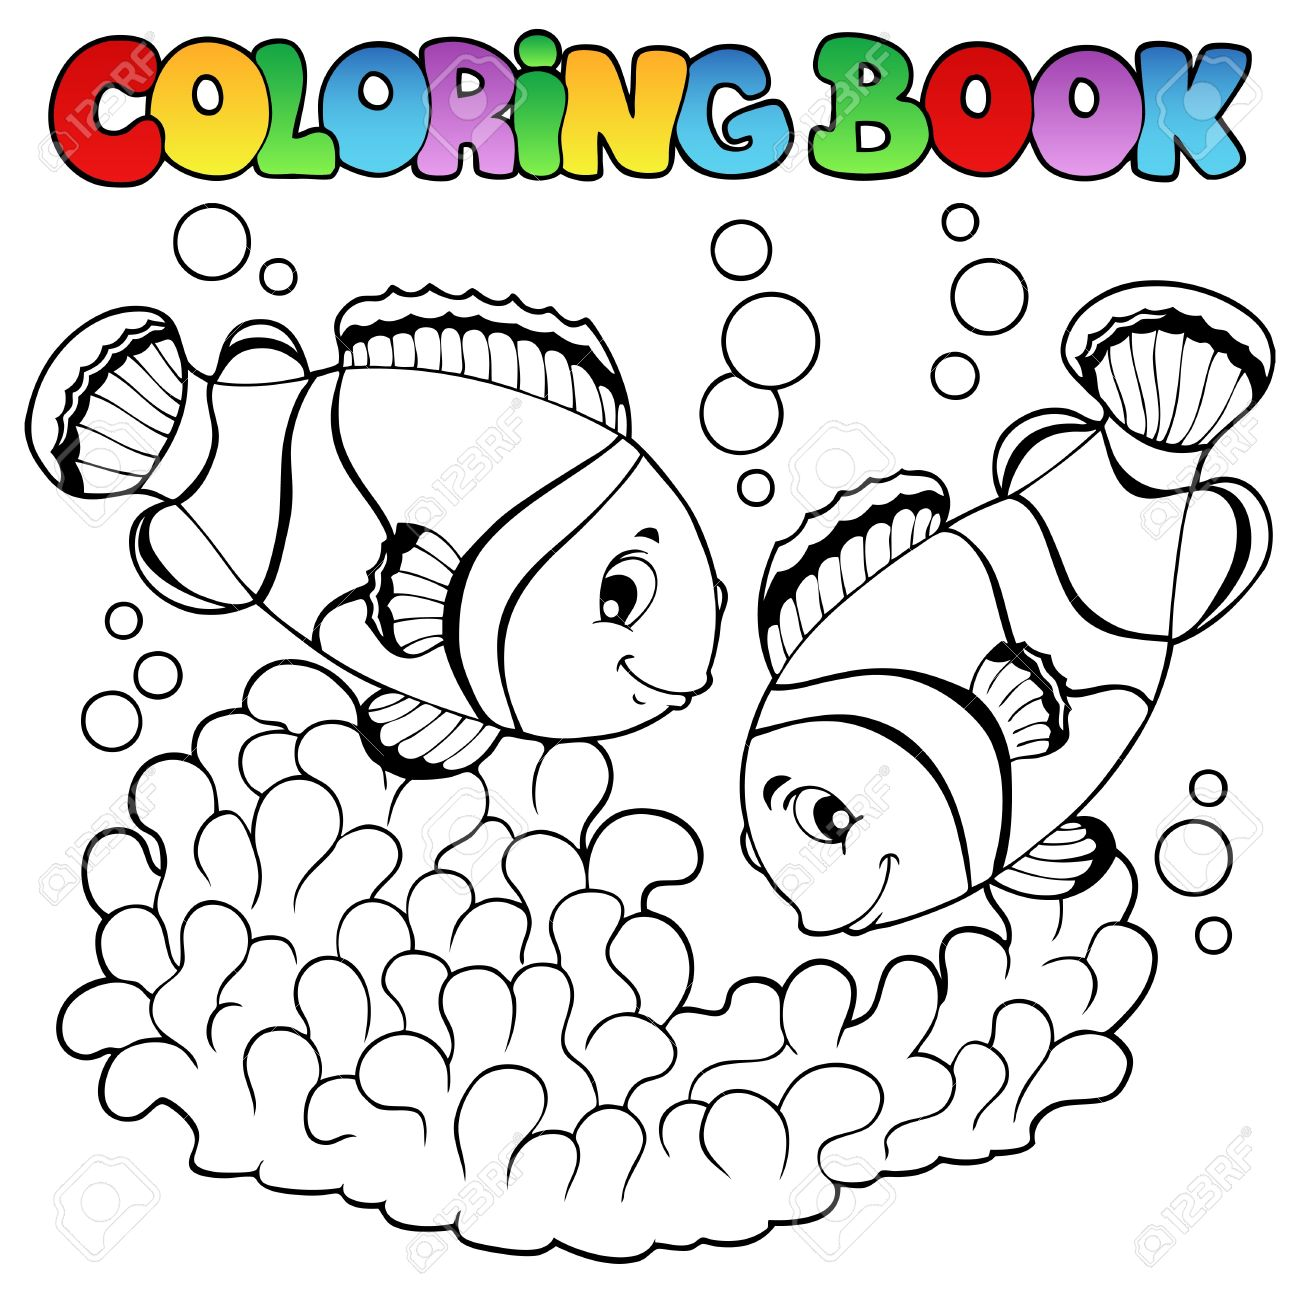 Coloring book two cute clown fishes  illustration Stock Vector - 14603729